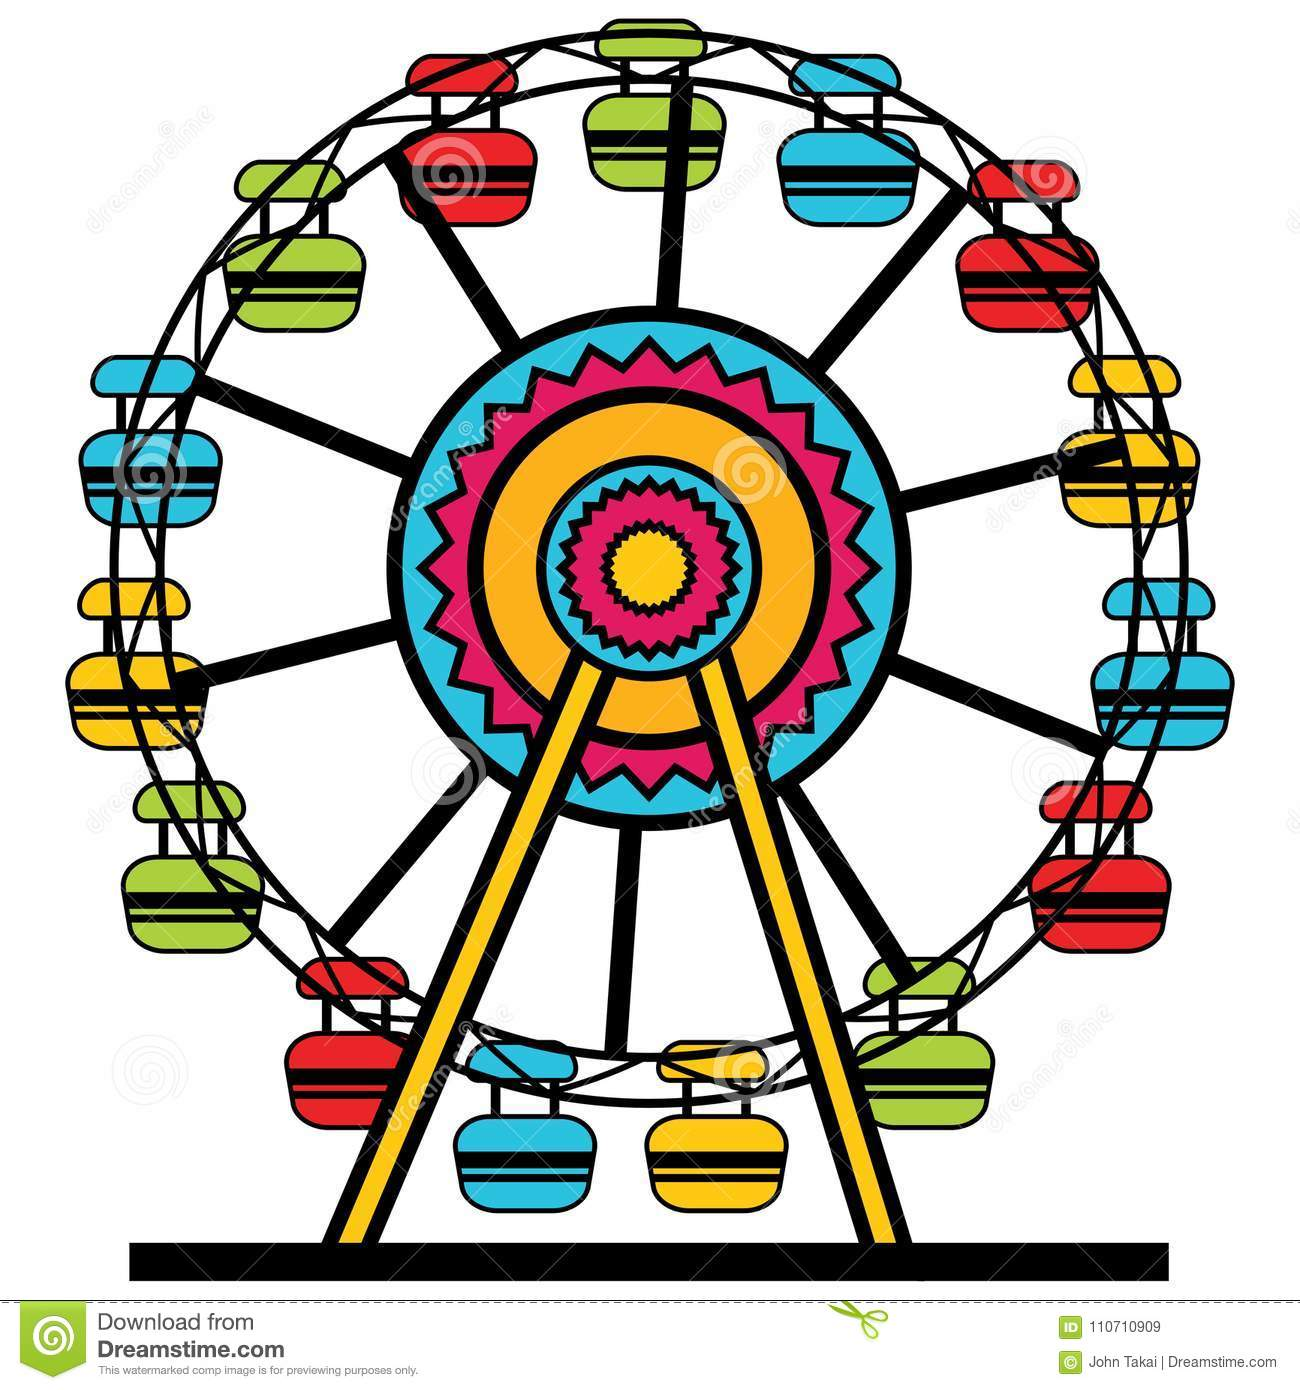 Icono de Ferris Wheel Amusement Park Cartoon